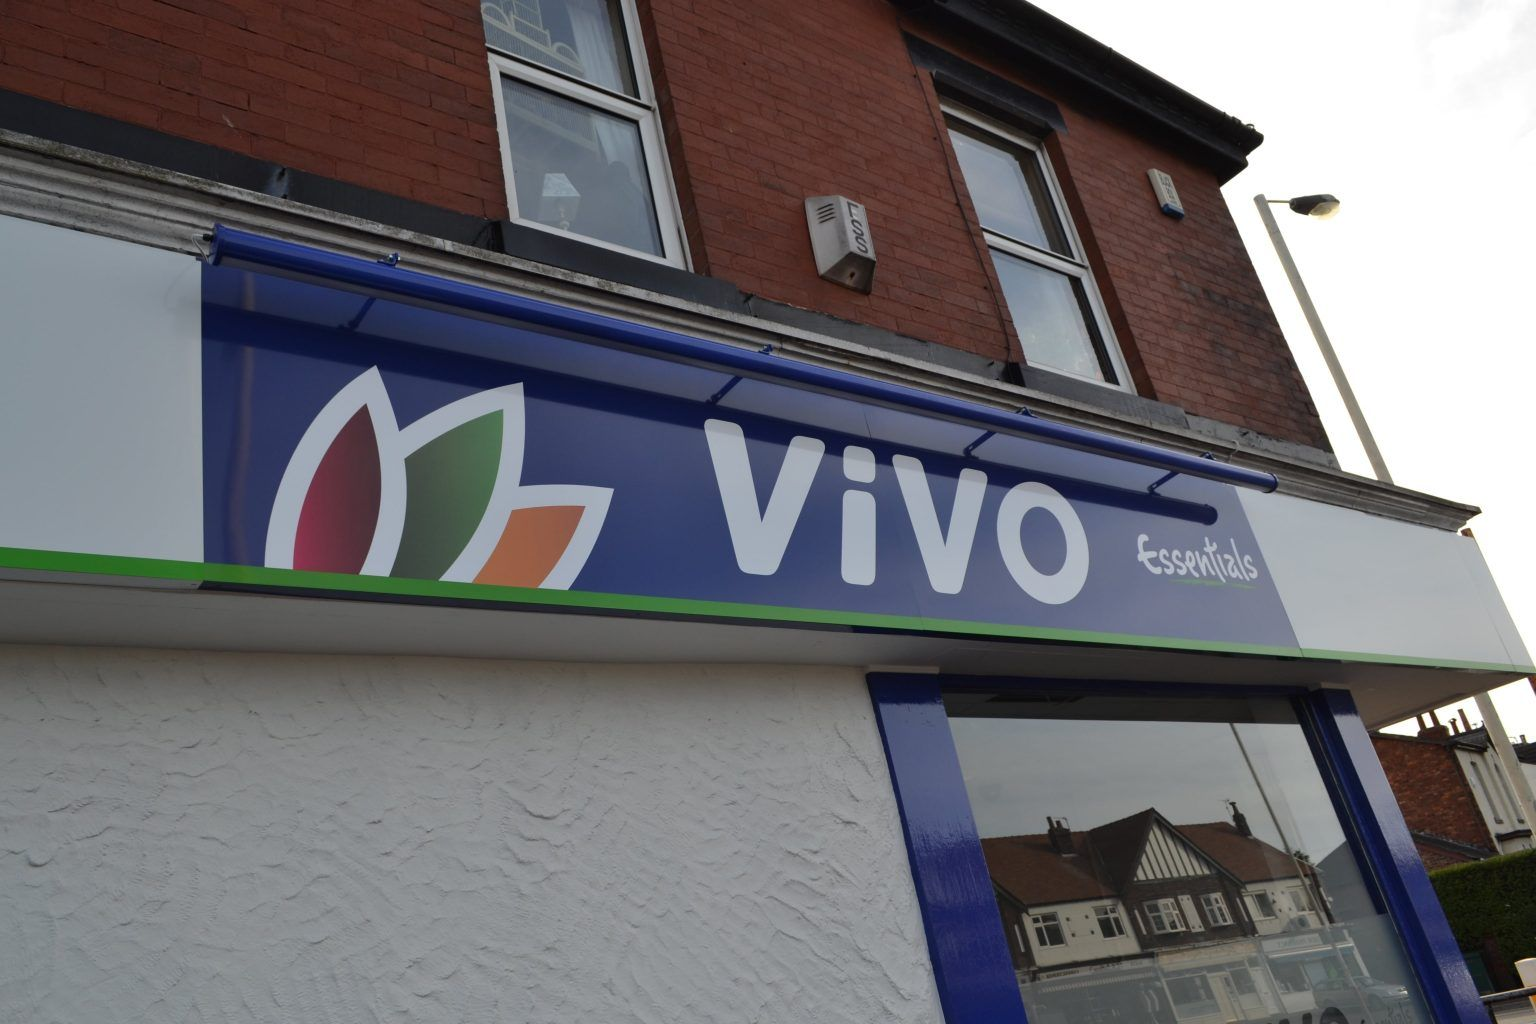 VIVO Troughlight Illuminated Tray Sign (2)